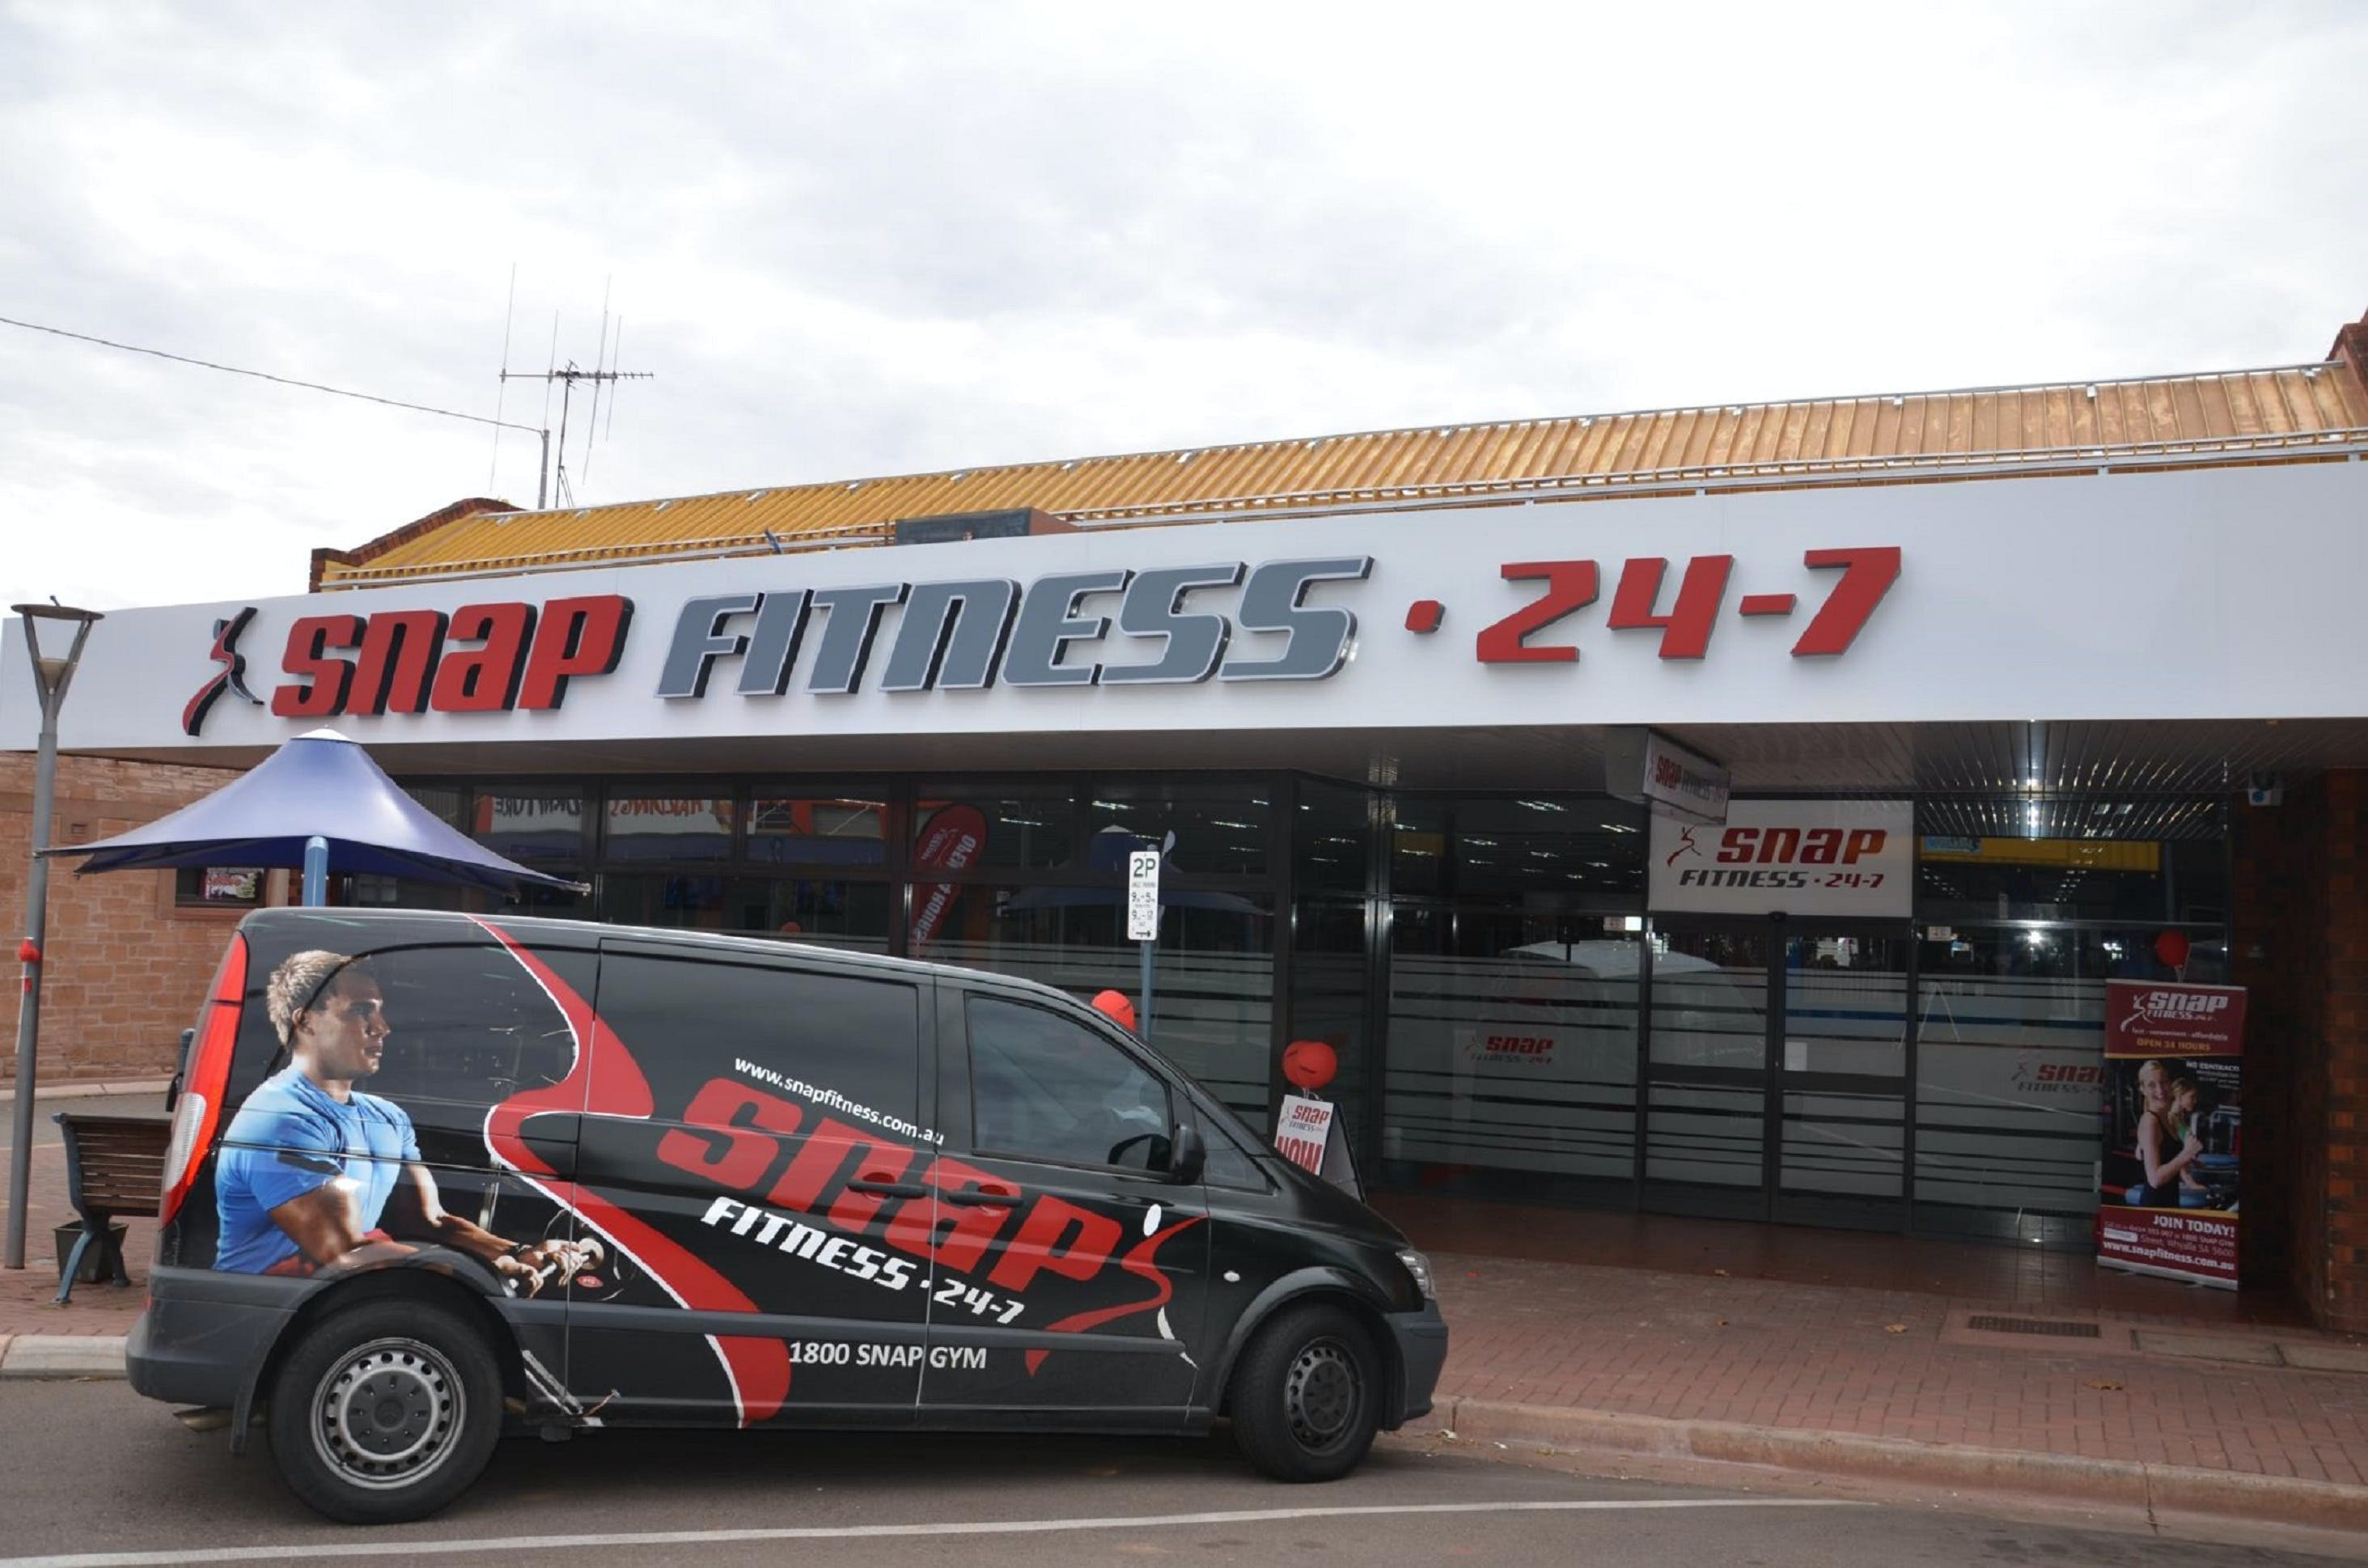 Snap Fitness Whyalla 24/7 gym - Accommodation in Bendigo